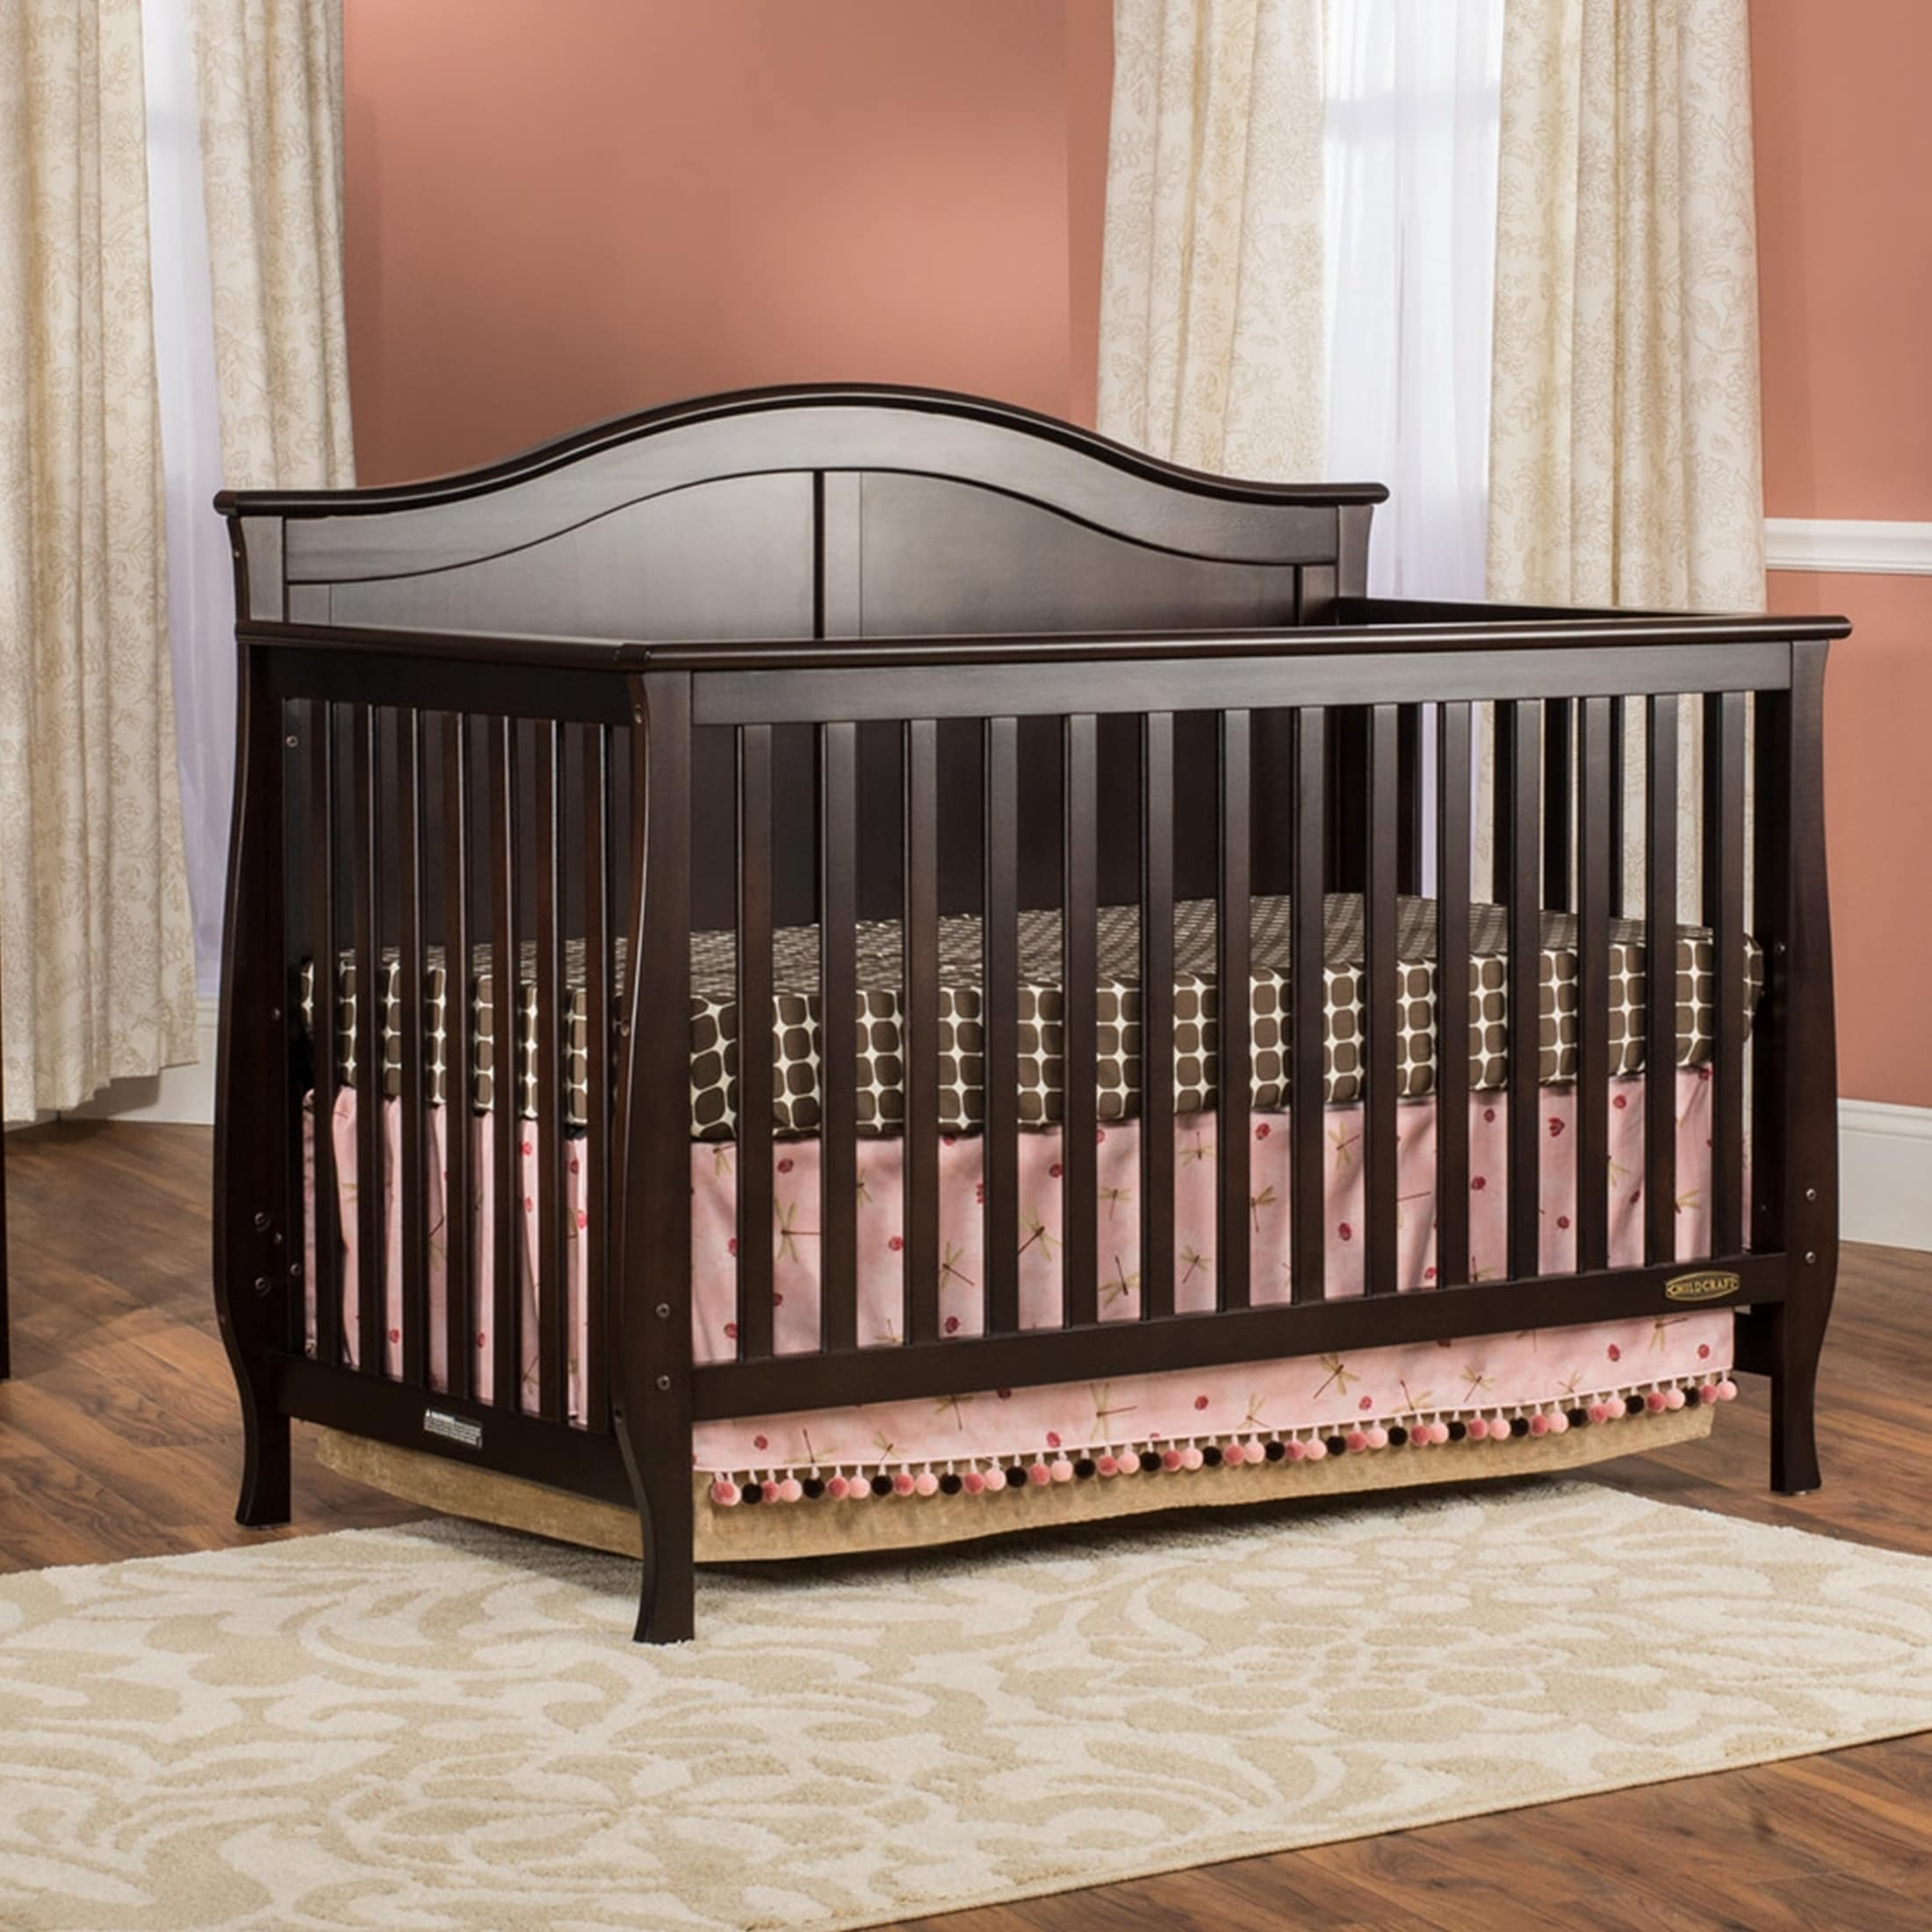 lifetime in cribs today camden child garden shipping crib craft home slate overstock product free convertible